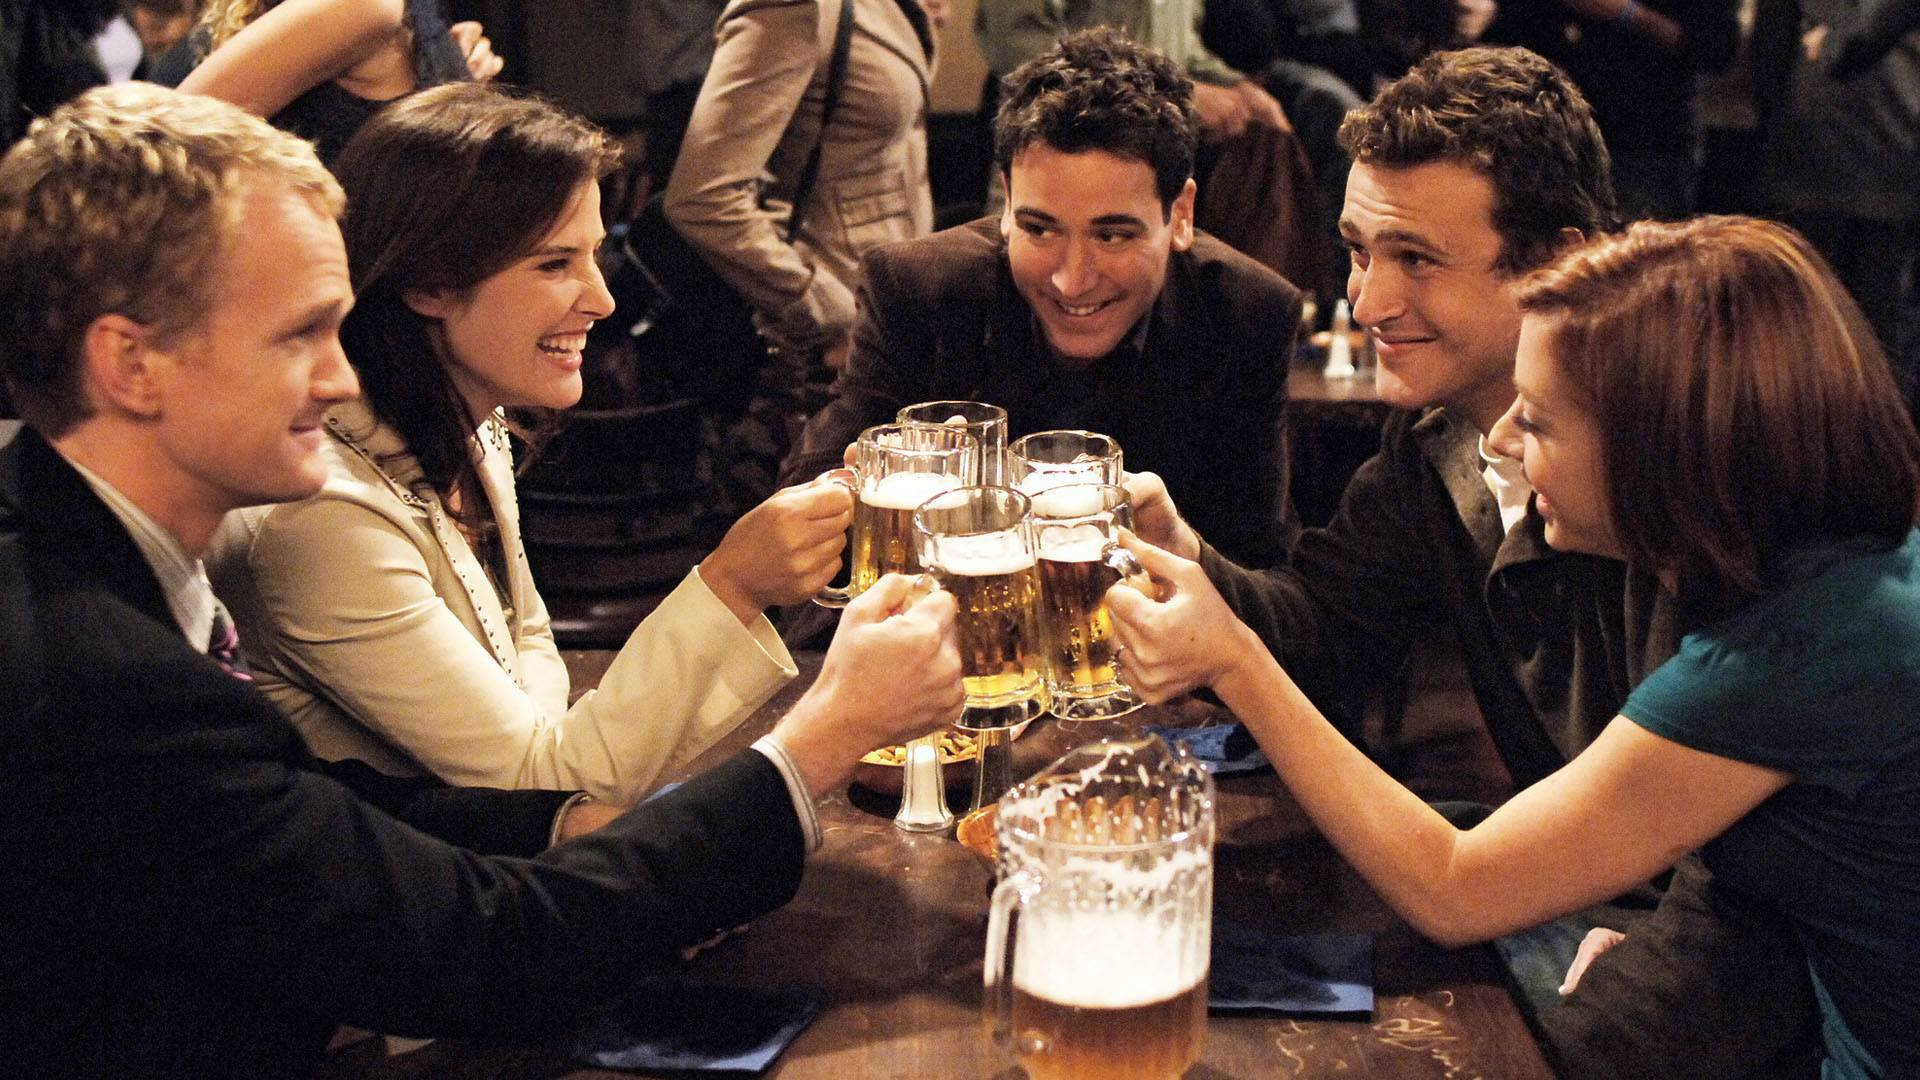 How I Met Your Mother Hd Wallpaper Background Image 1920x1080